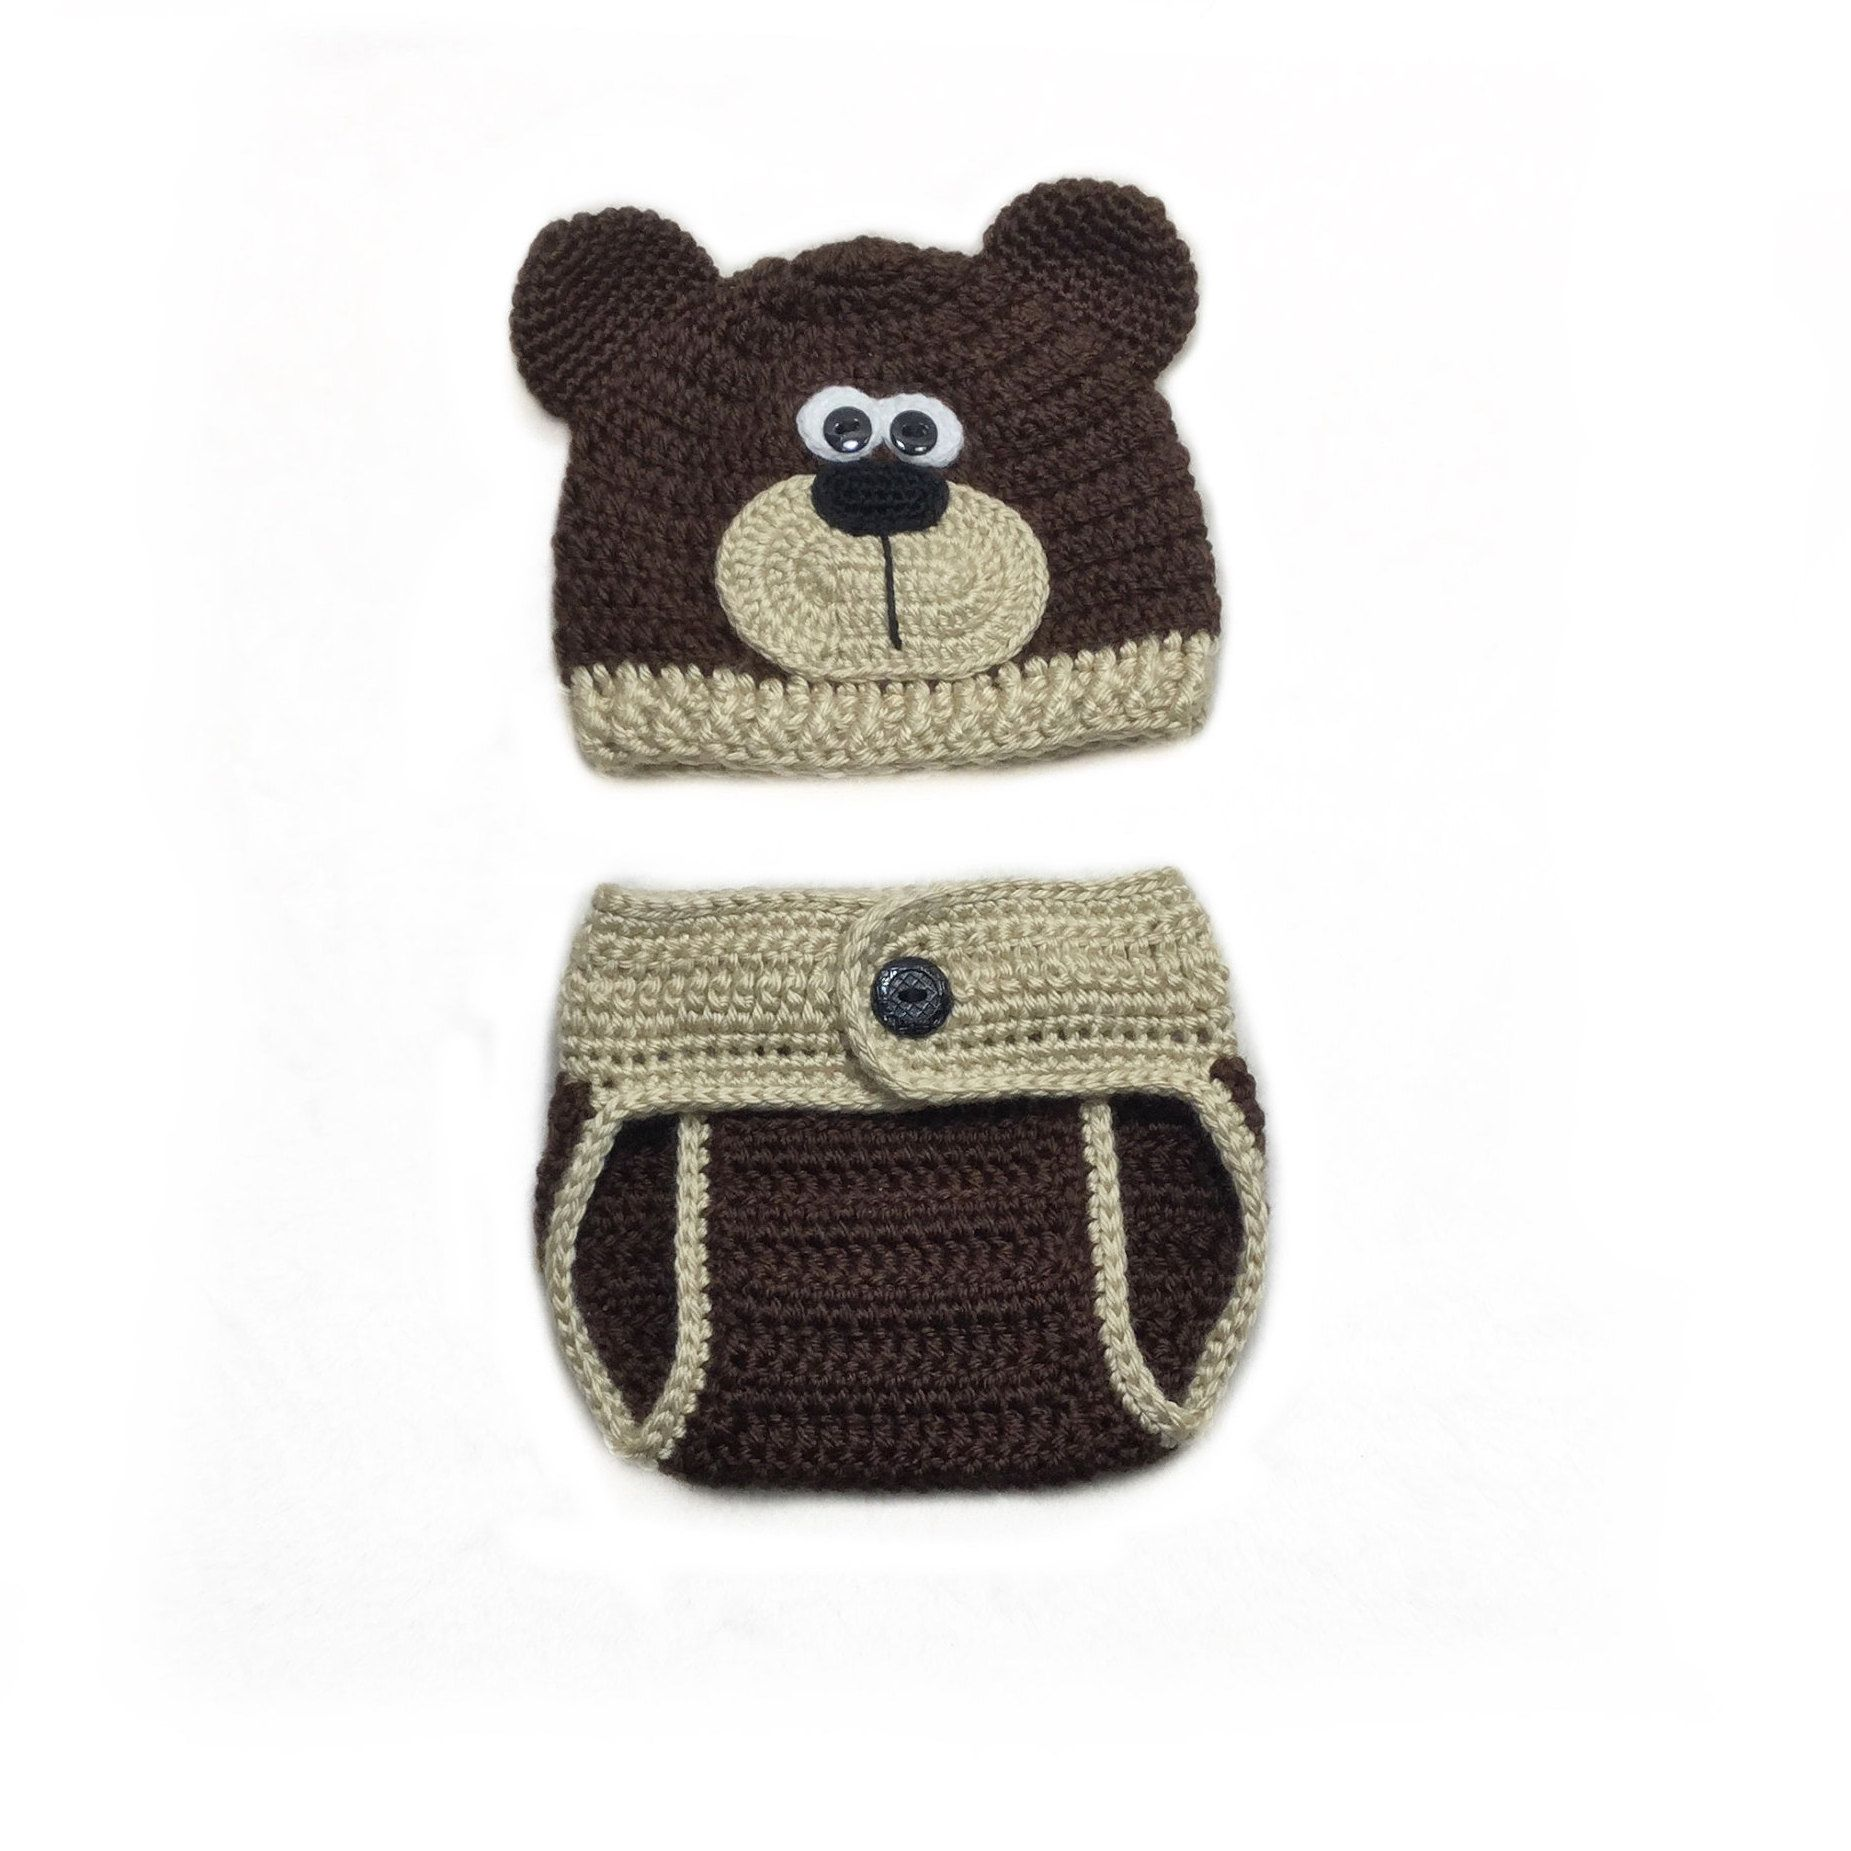 843838c92 Crochet bear hat teddy brown Baby outfit Teddy bear hat cover diaper ...